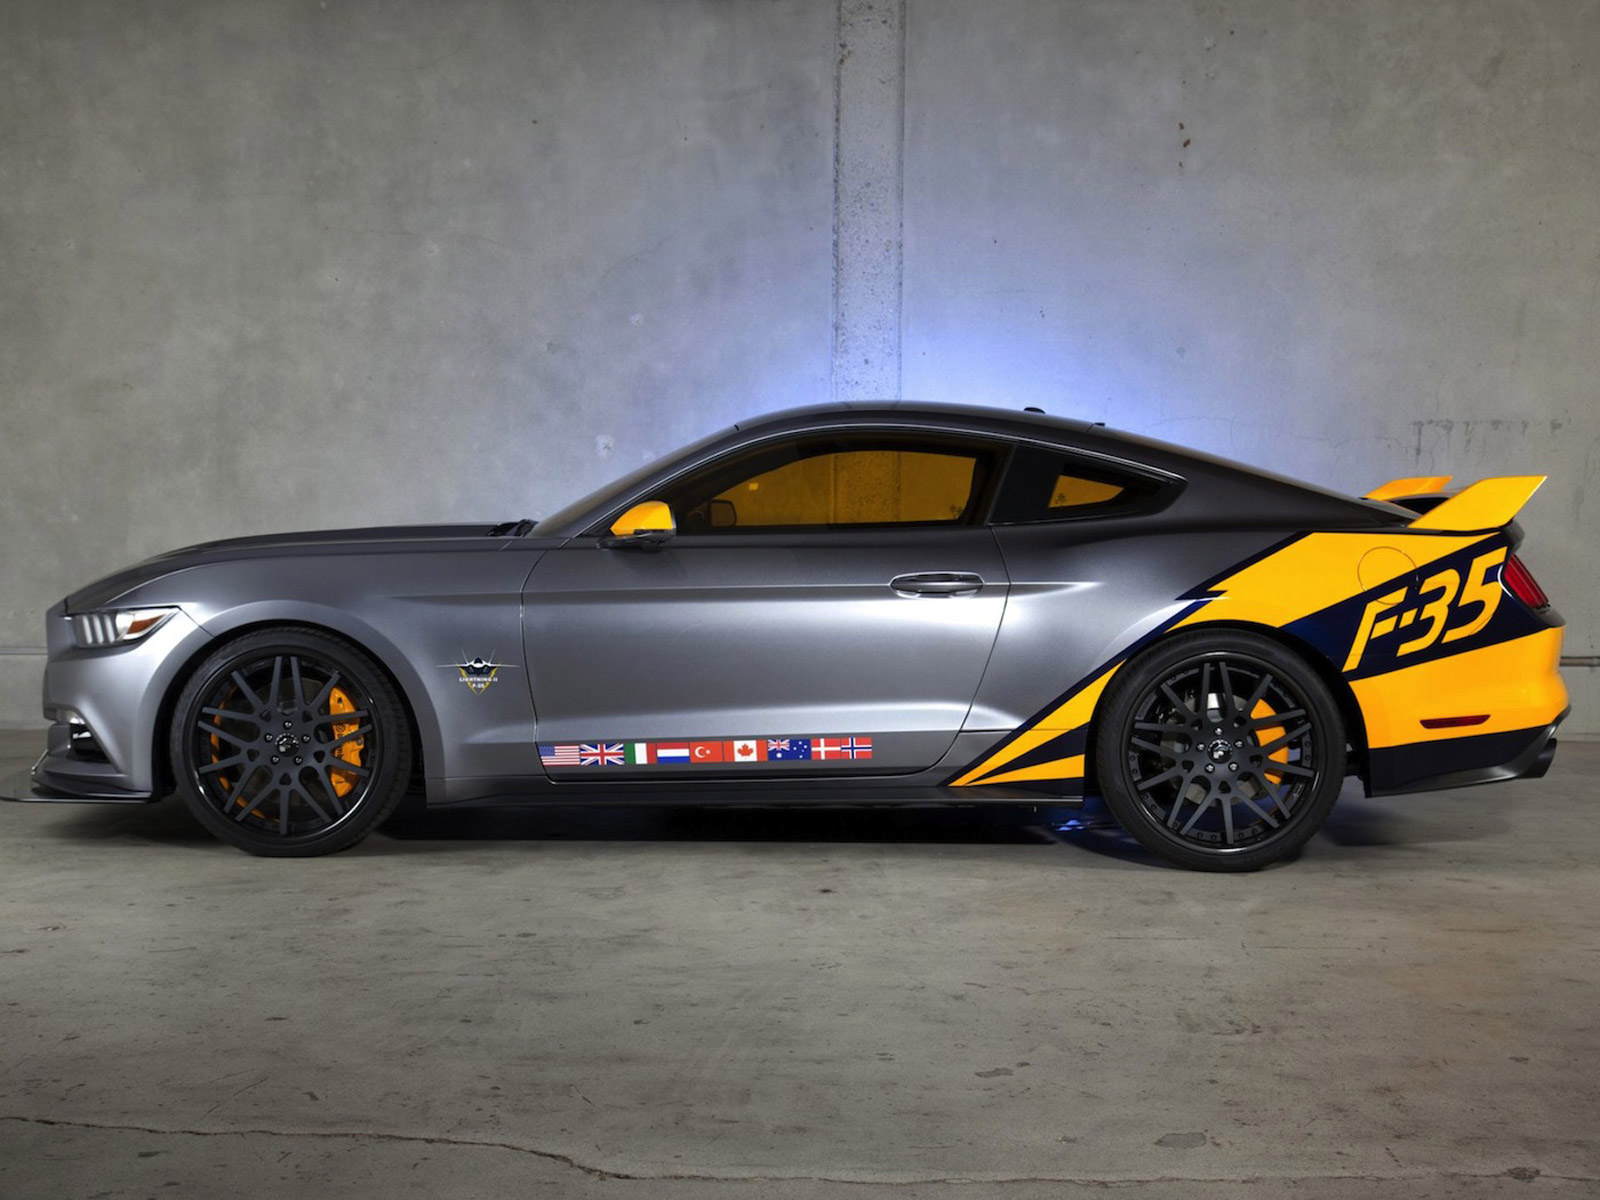 Ford revealed their first ever custom 2015 Mustang at 2014 EAA Air